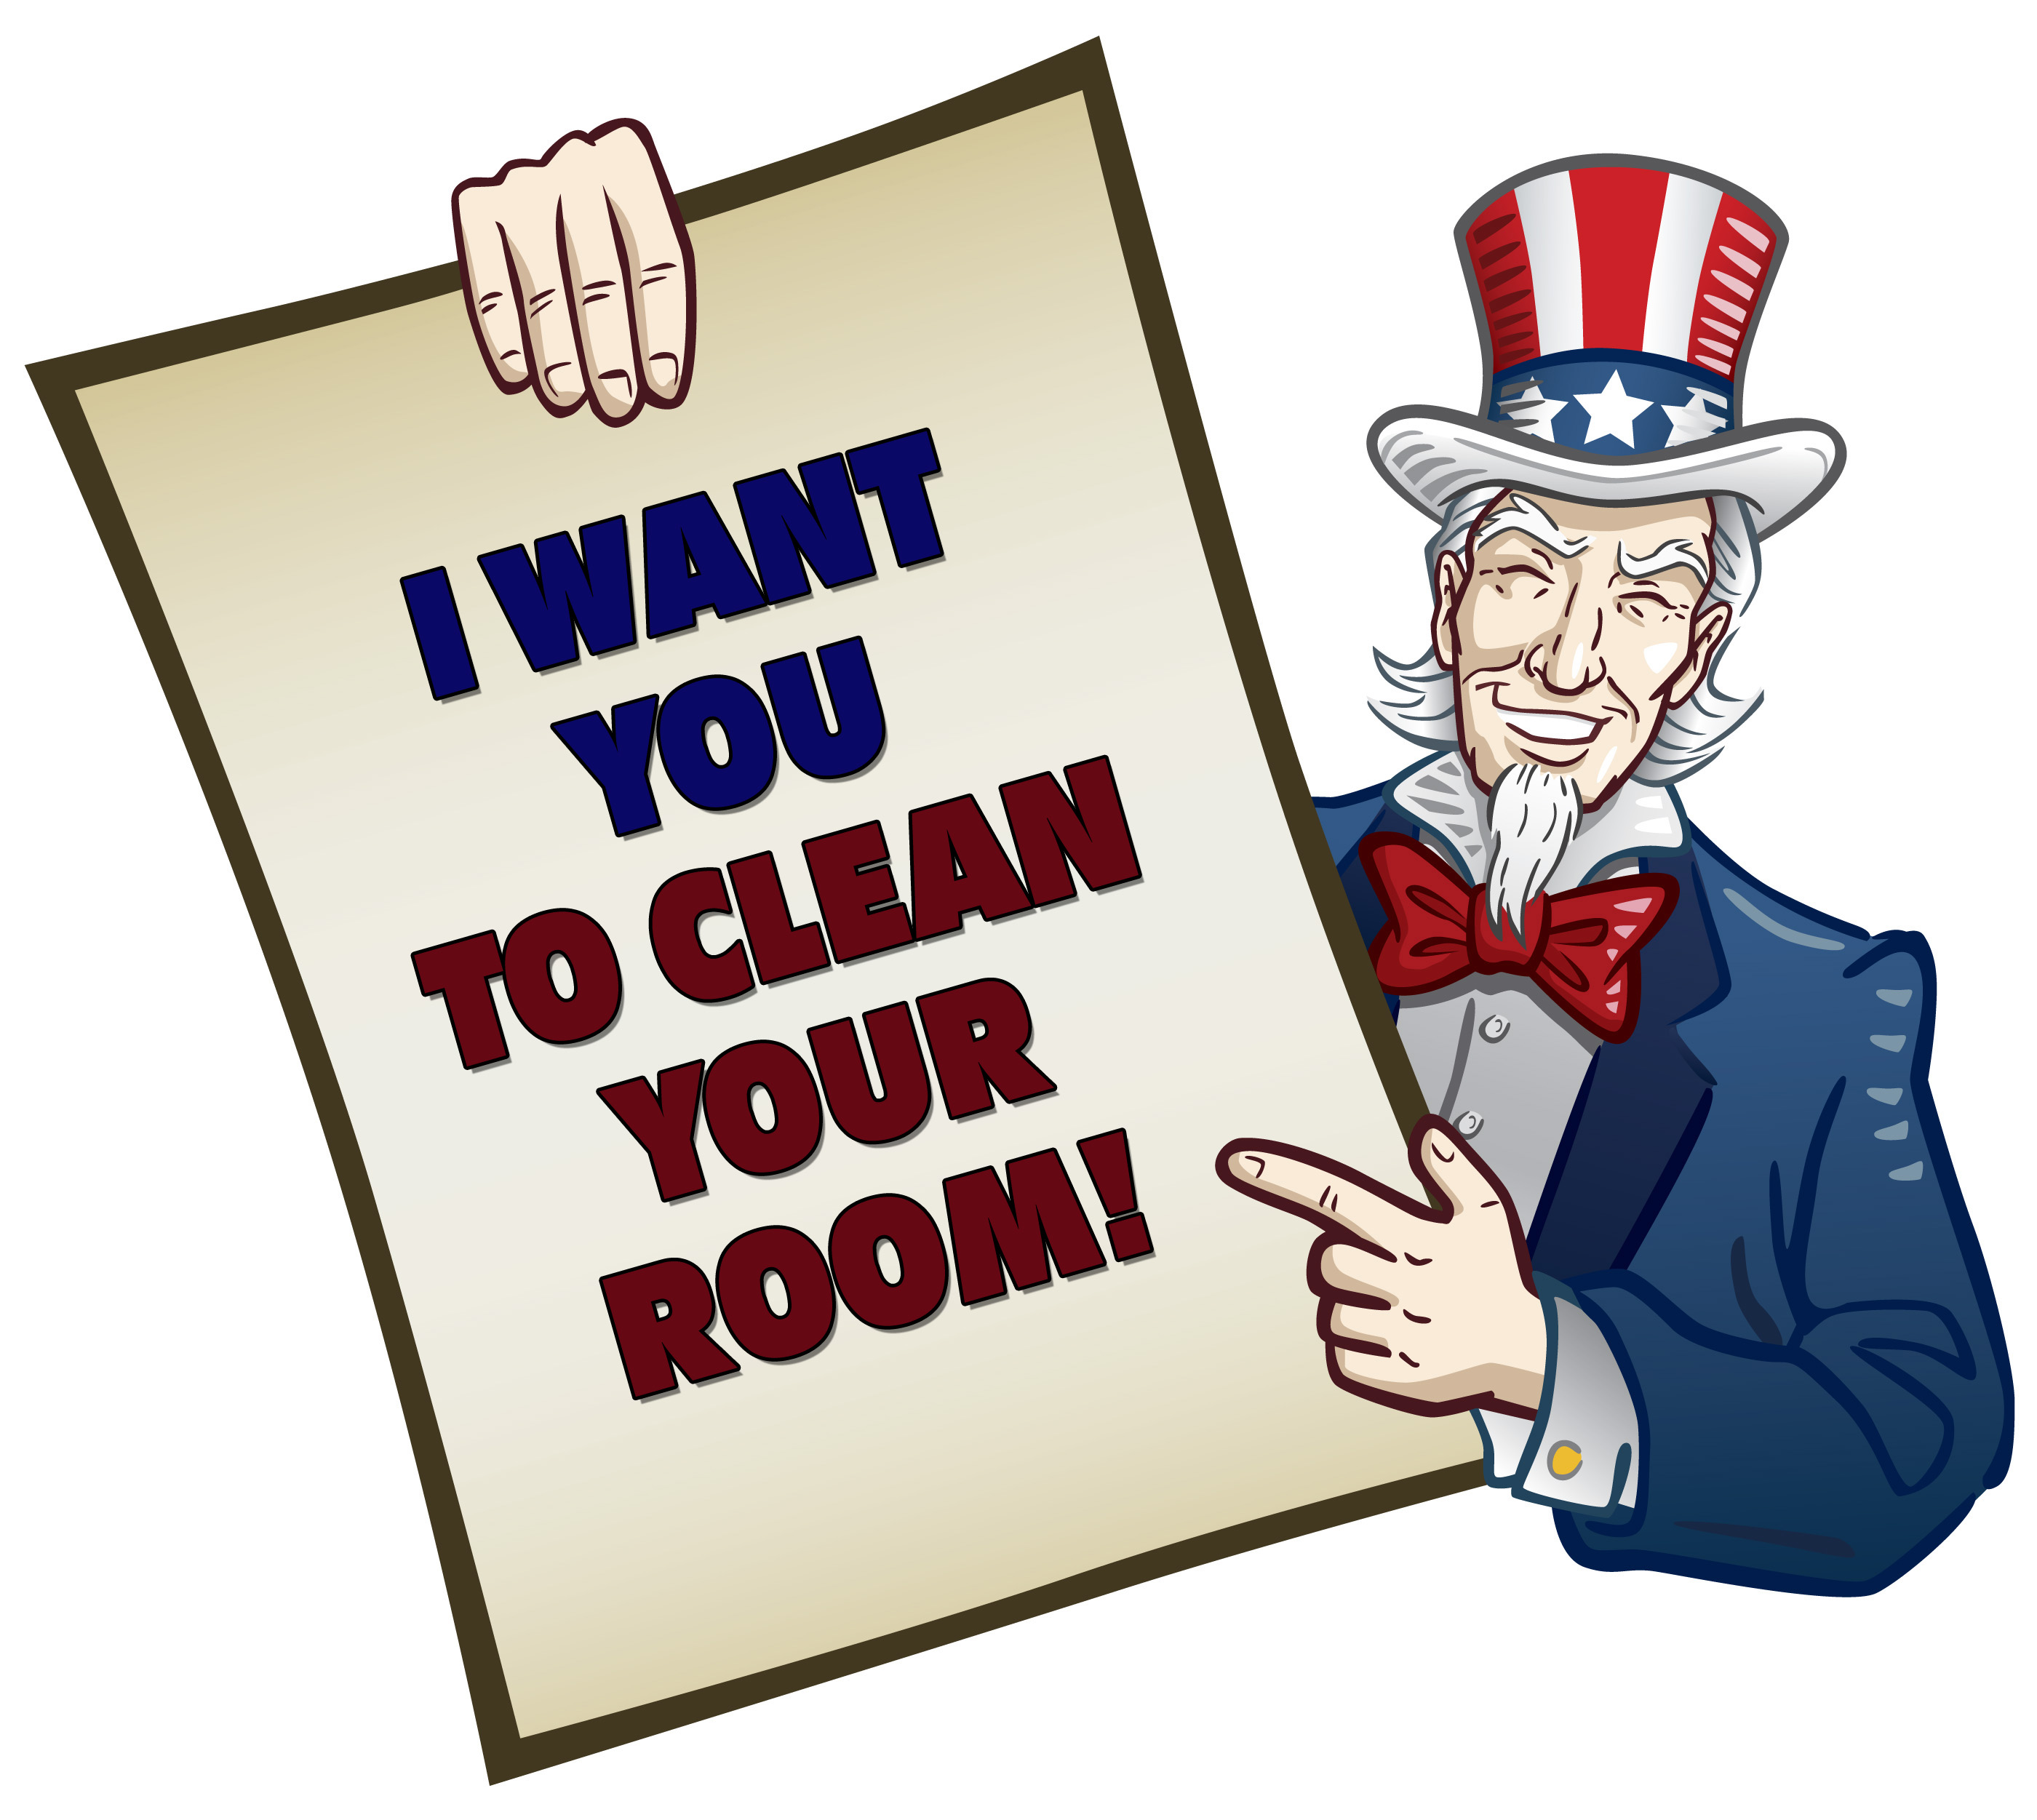 Uncle sam wants you clipart picture black and white library Uncle Sam We Want You Clip Art N3 free image picture black and white library